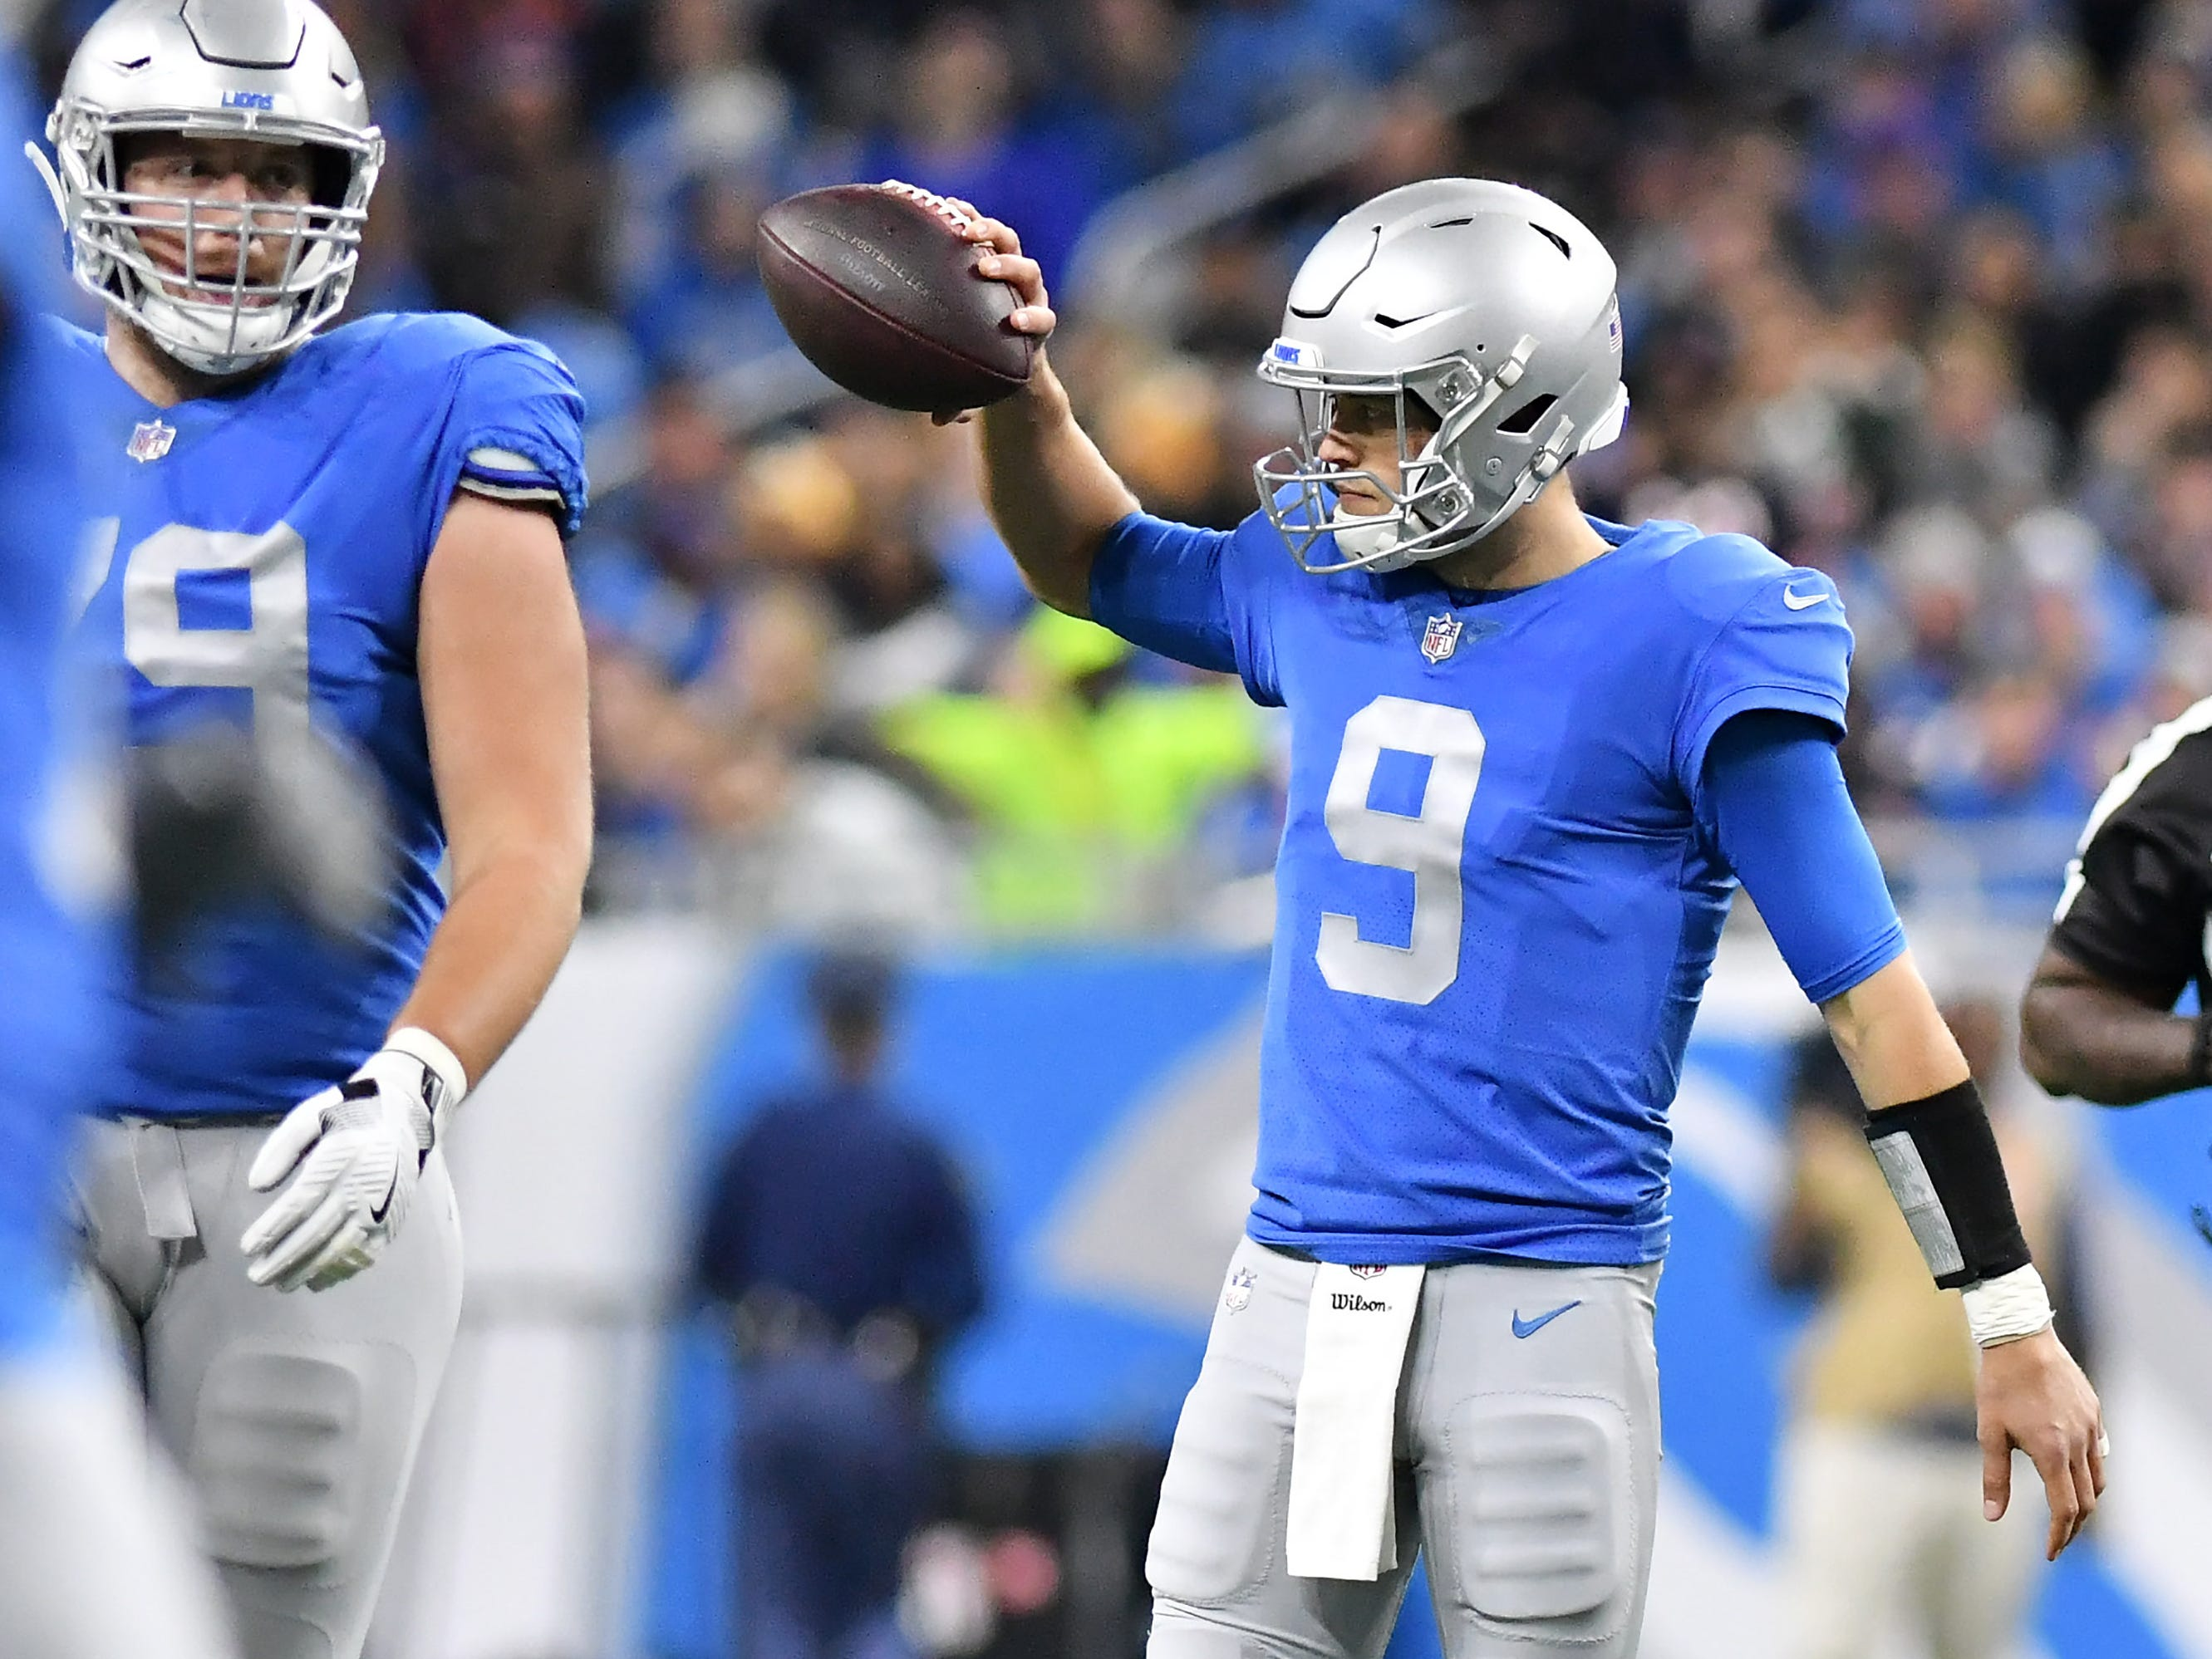 Lions quarterback Matthew Stafford reacts after a delay of game penalty In the second quarter. Detroit Lions vs Chicago Bears on Thanksgiving Day at Ford Field in Detroit on Nov. 22, 2018. (Robin Buckson / Detroit News)